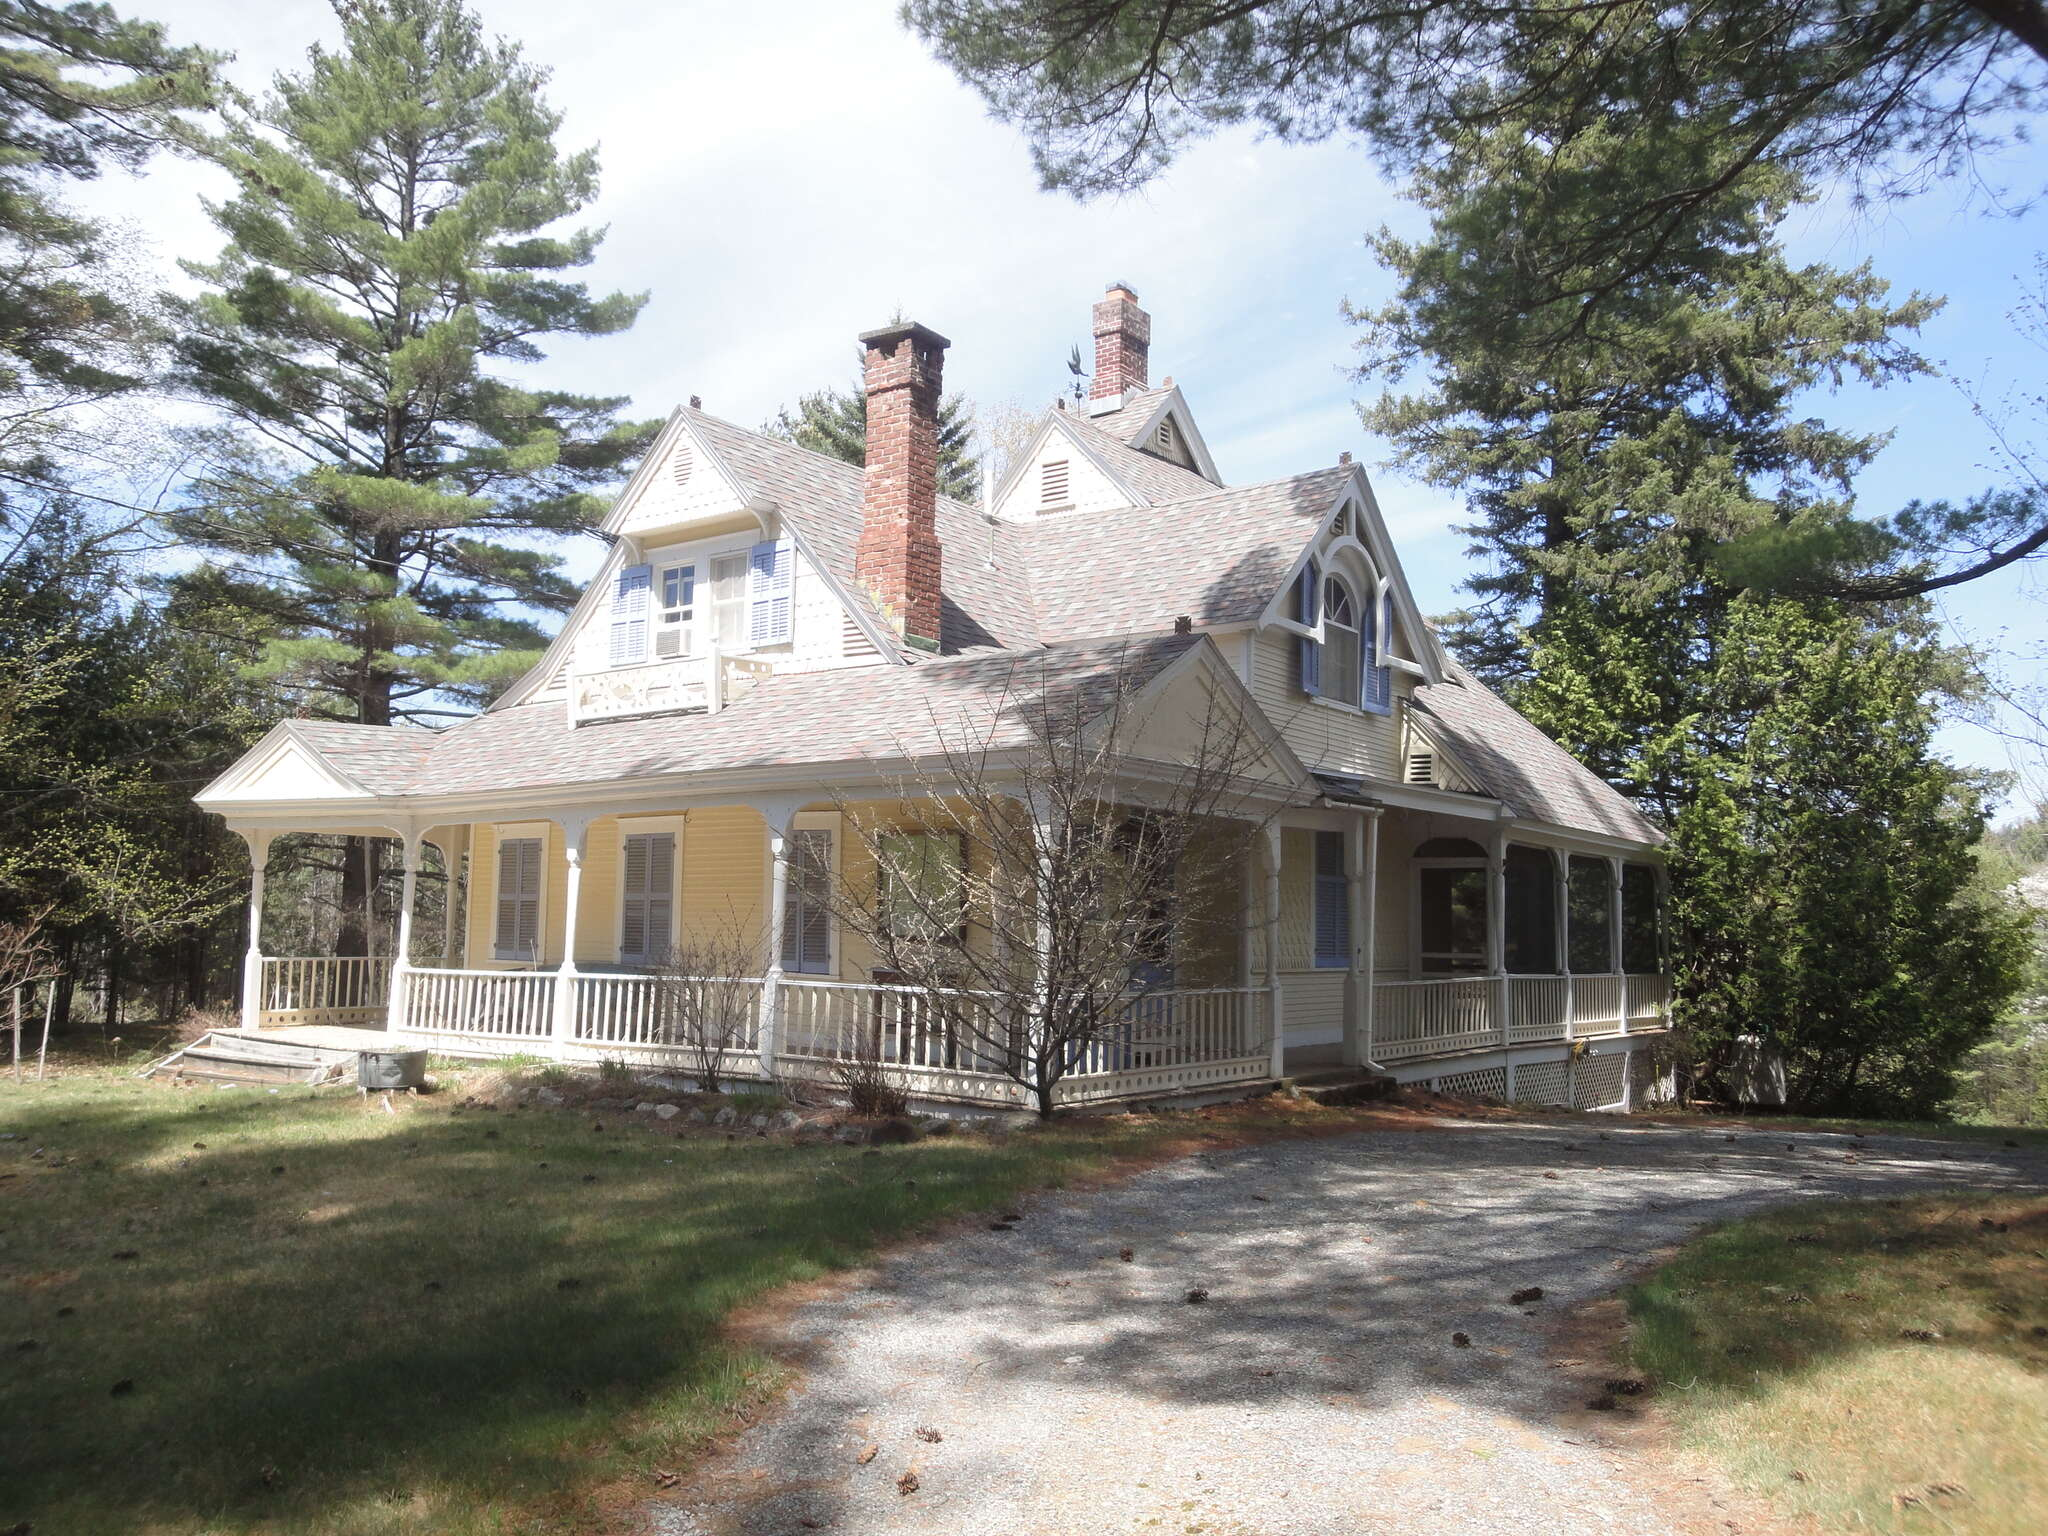 Vacation Property for Sale at 331 Ny Rt.74 Schroon Lake, New York 12870 United States